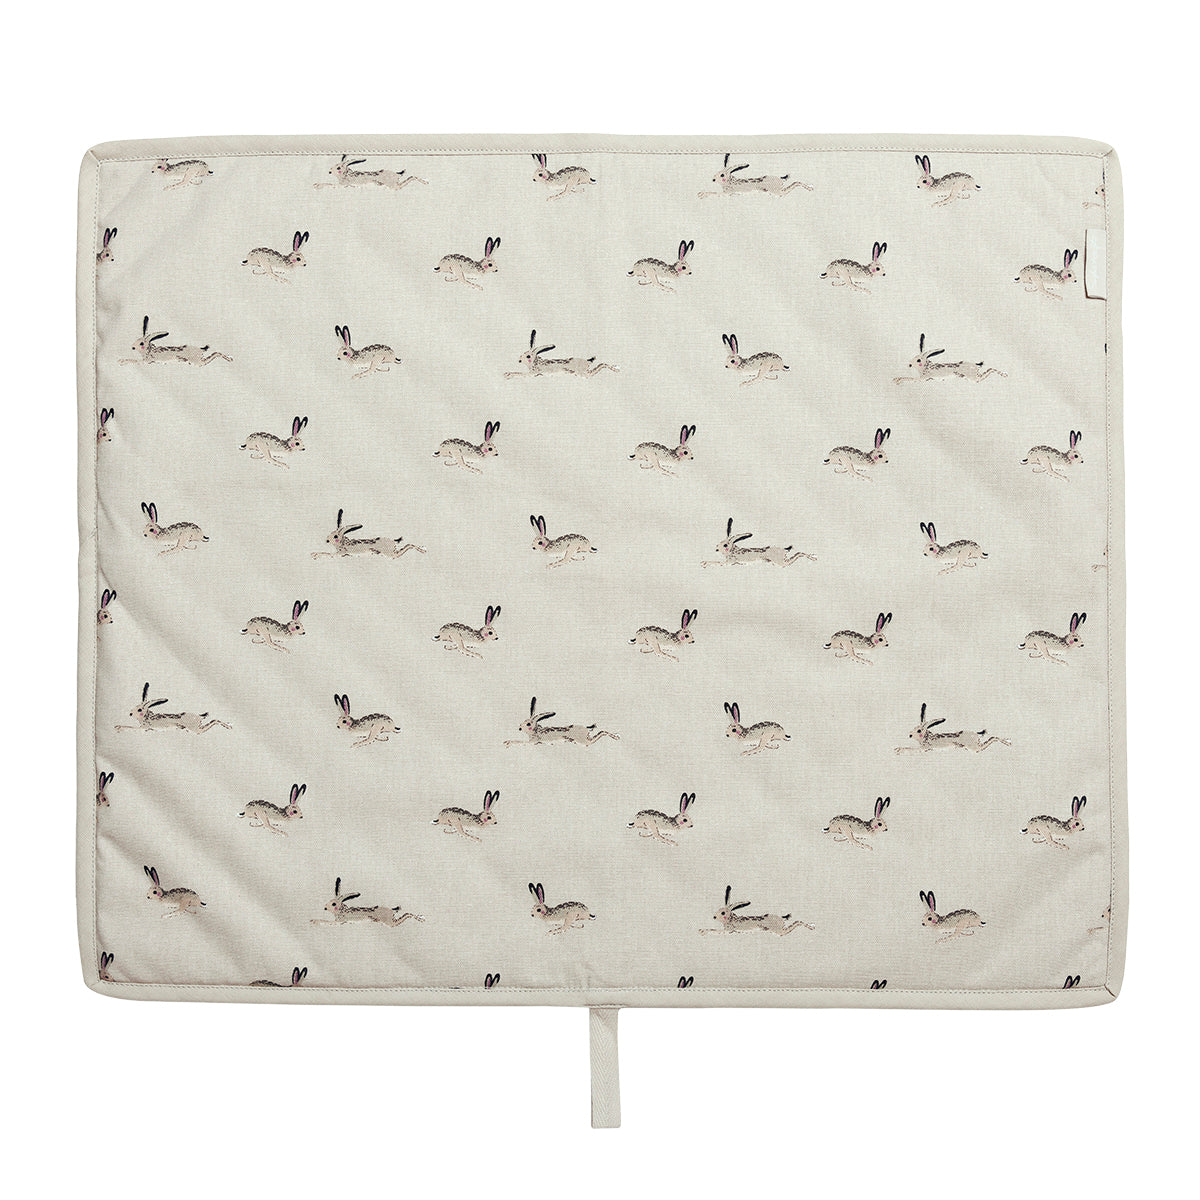 Hare Rectangular Hob Cover for Everhot by Sophie Allport